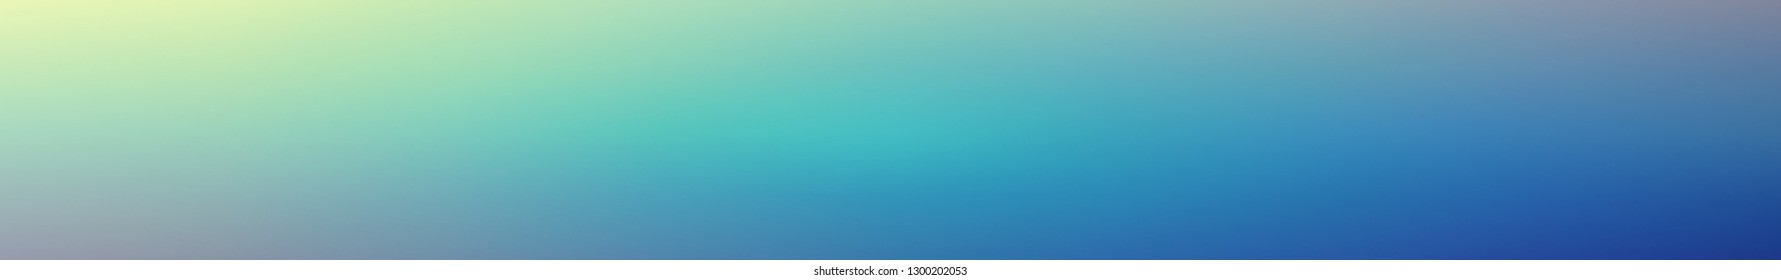 Panoramic colorful gradient mesh background soft bright light.  Horizontal view for a glass panels - skinali. Easy editable soft colored vector template. Premium quality. Modern trendy colors.